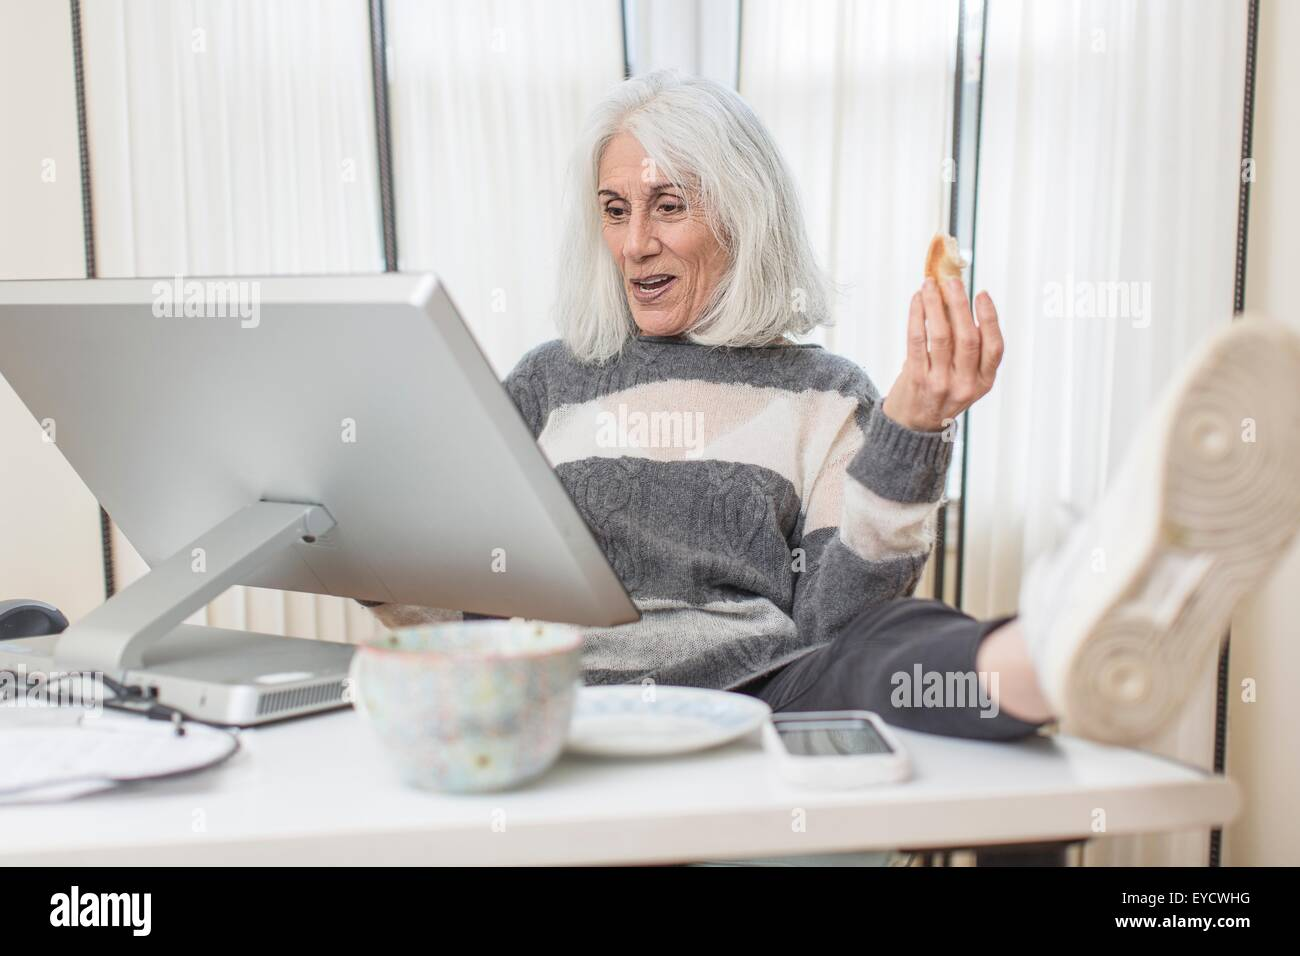 Portrait of senior woman sitting at computer with foot on desk - Stock Image